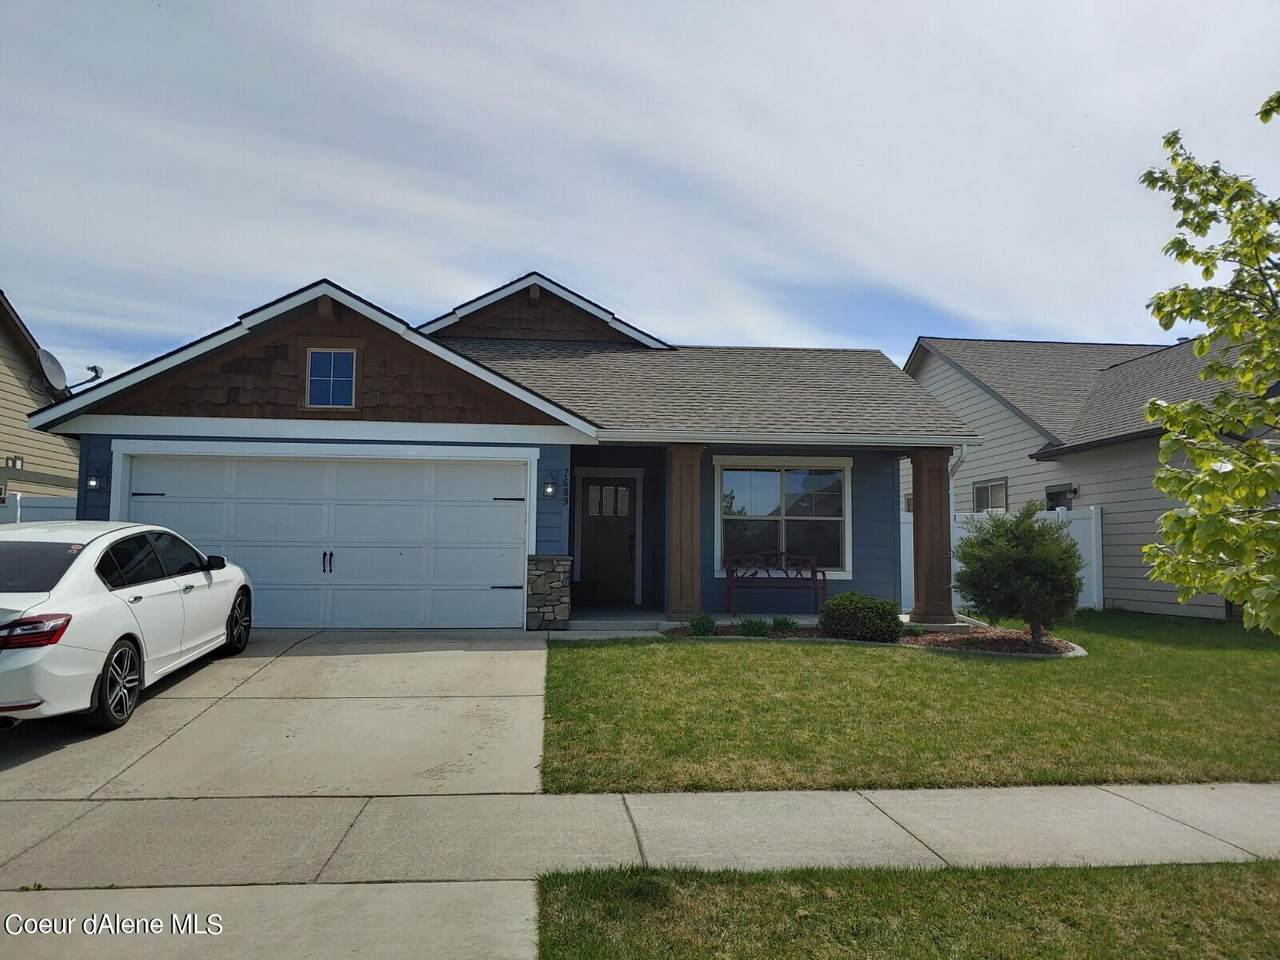 7689 Goodwater Loop - Photo 1